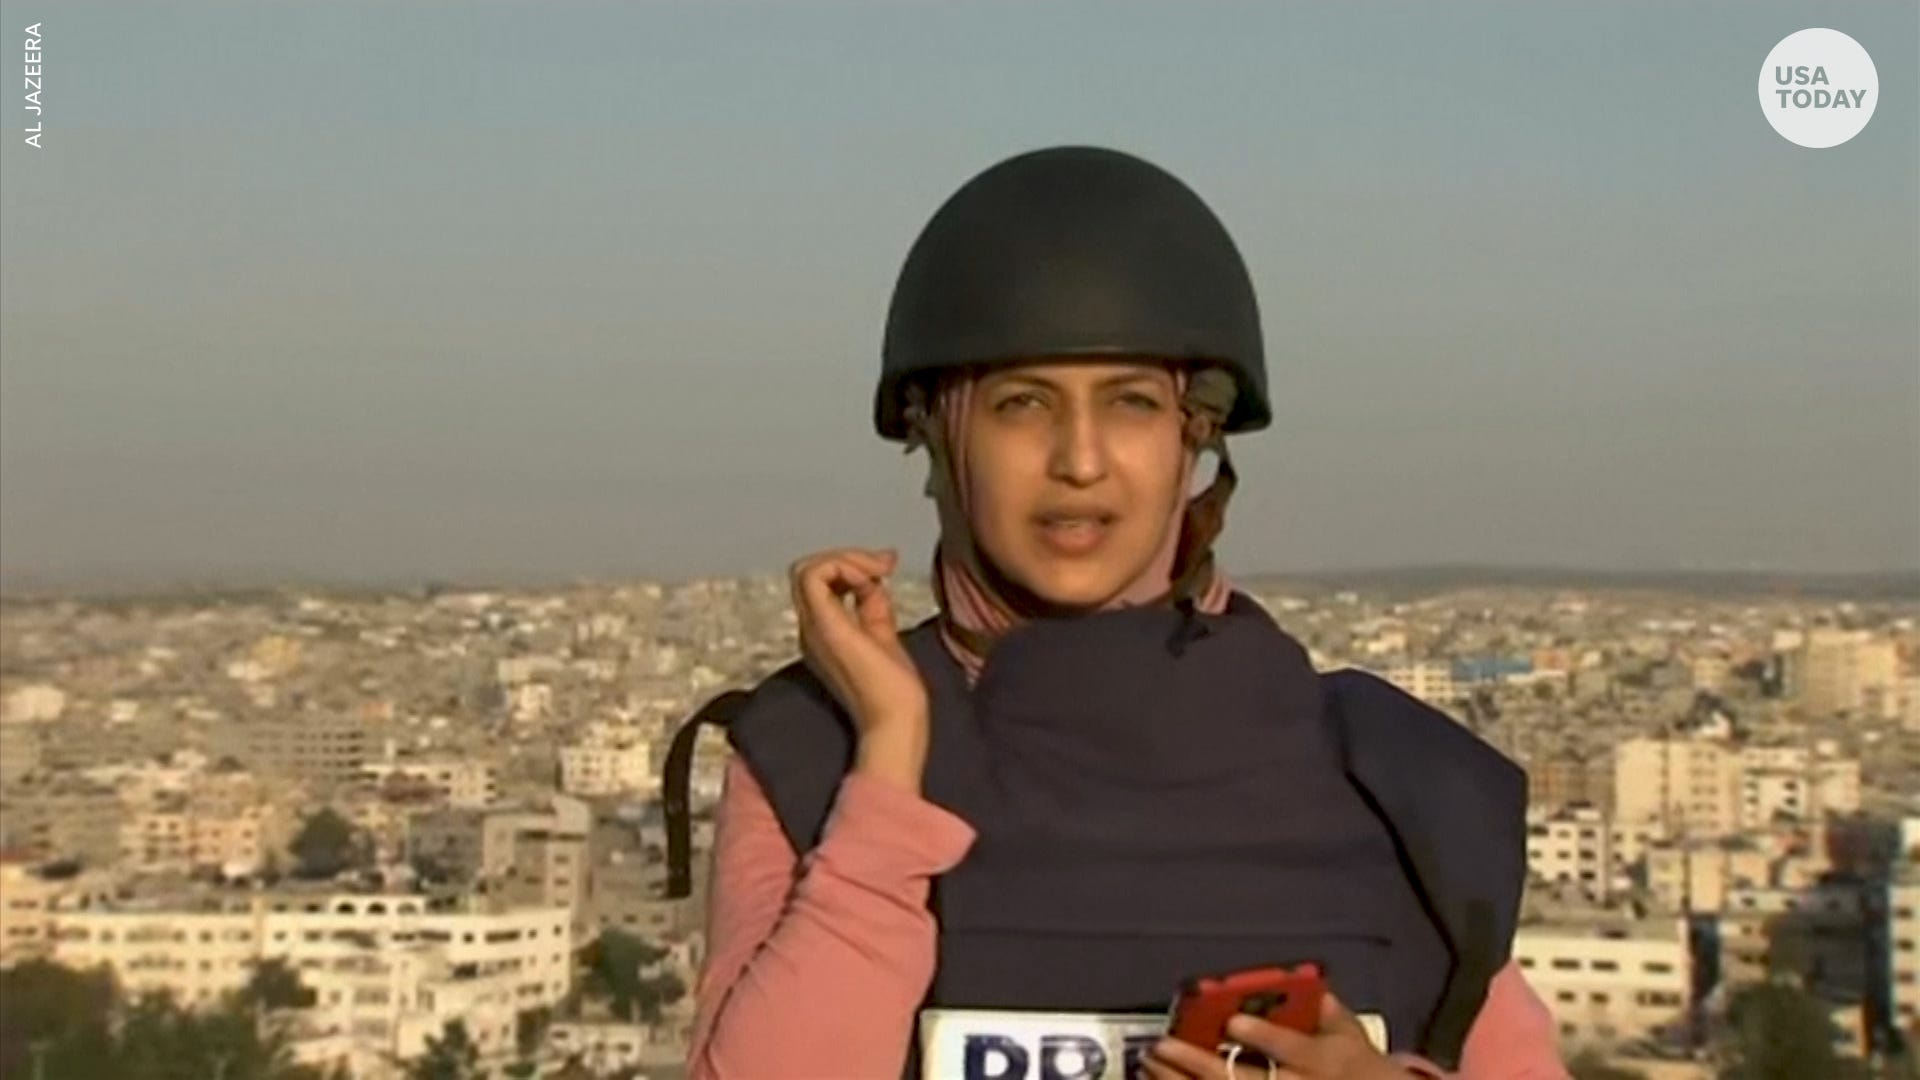 Journalist shaken when airstrike hits building directly in front of her during live report